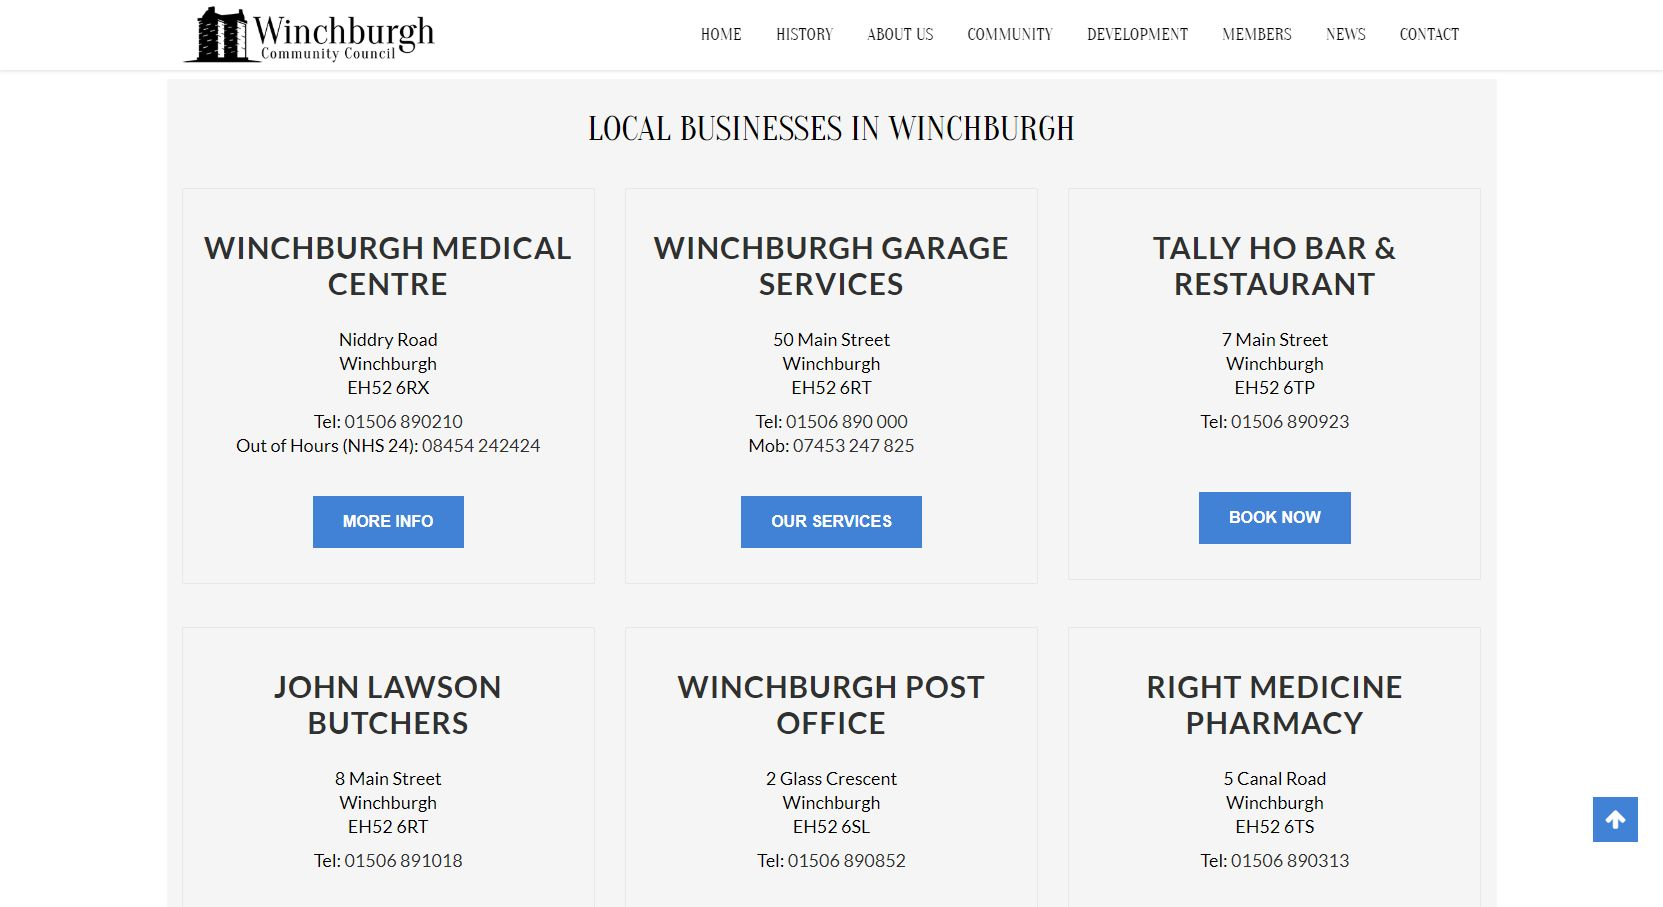 Winchburgh Community Council Businesses